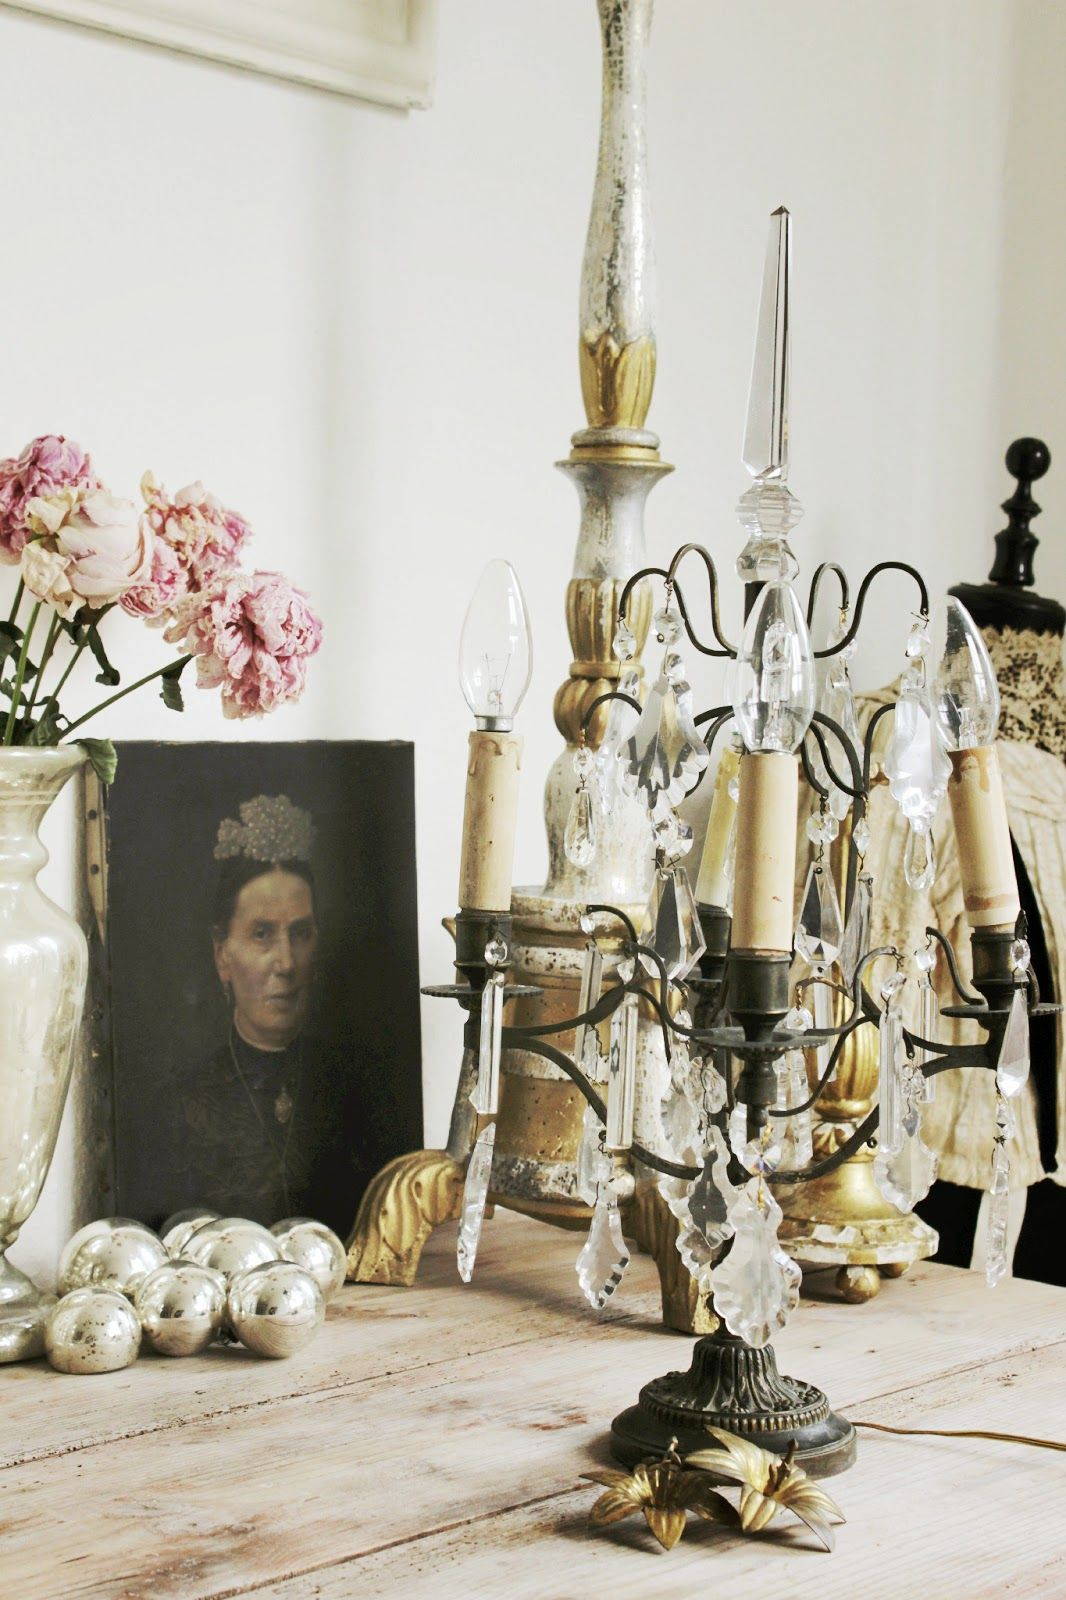 Vintage Interior and Lifestyle: new challenge - chateau feeling - girandole.